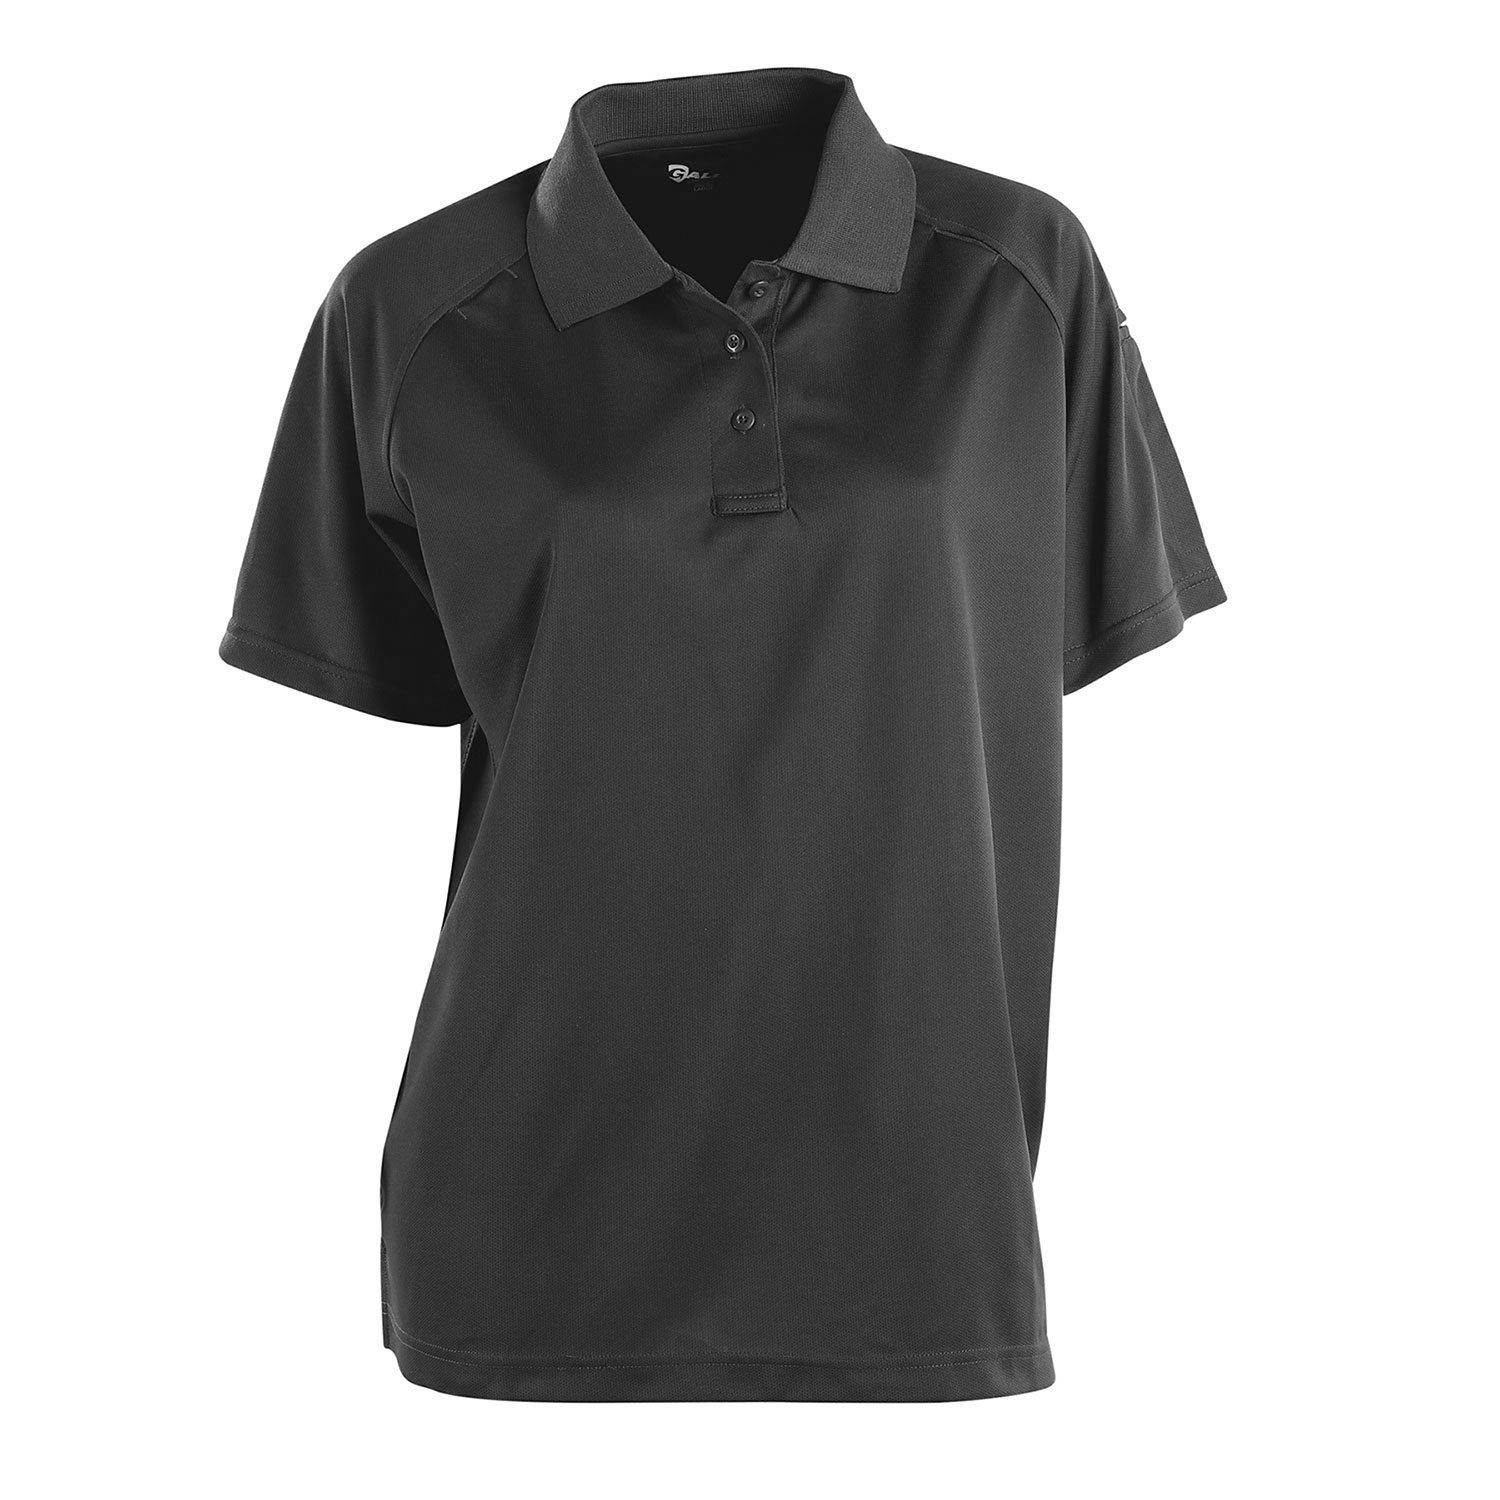 Galls Women's Tac Force Lightweight Polo